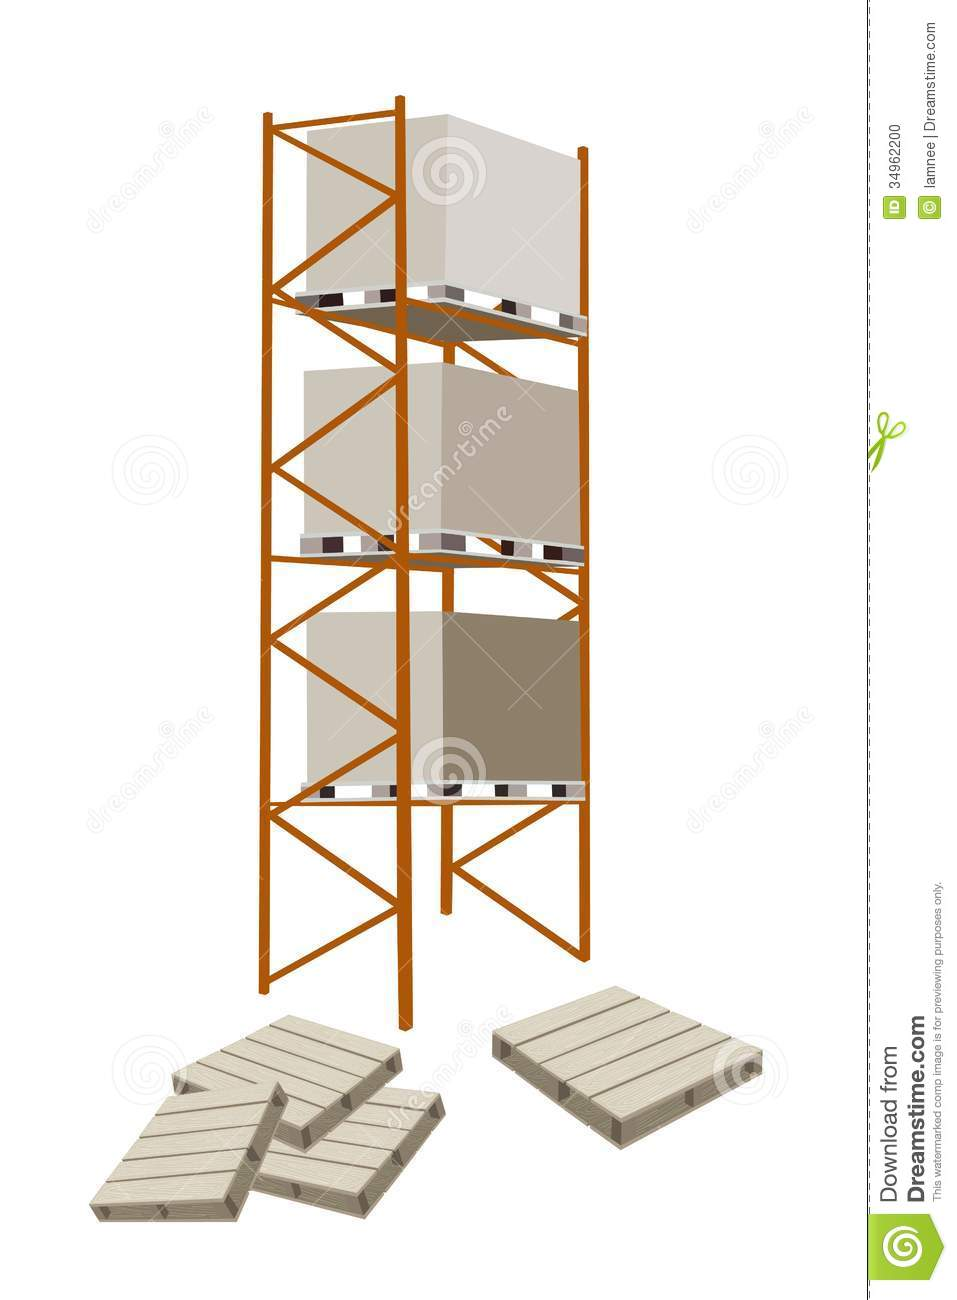 Cargo Shelf With Shipping Box And Pallet Stock Photo - Image: 34962200